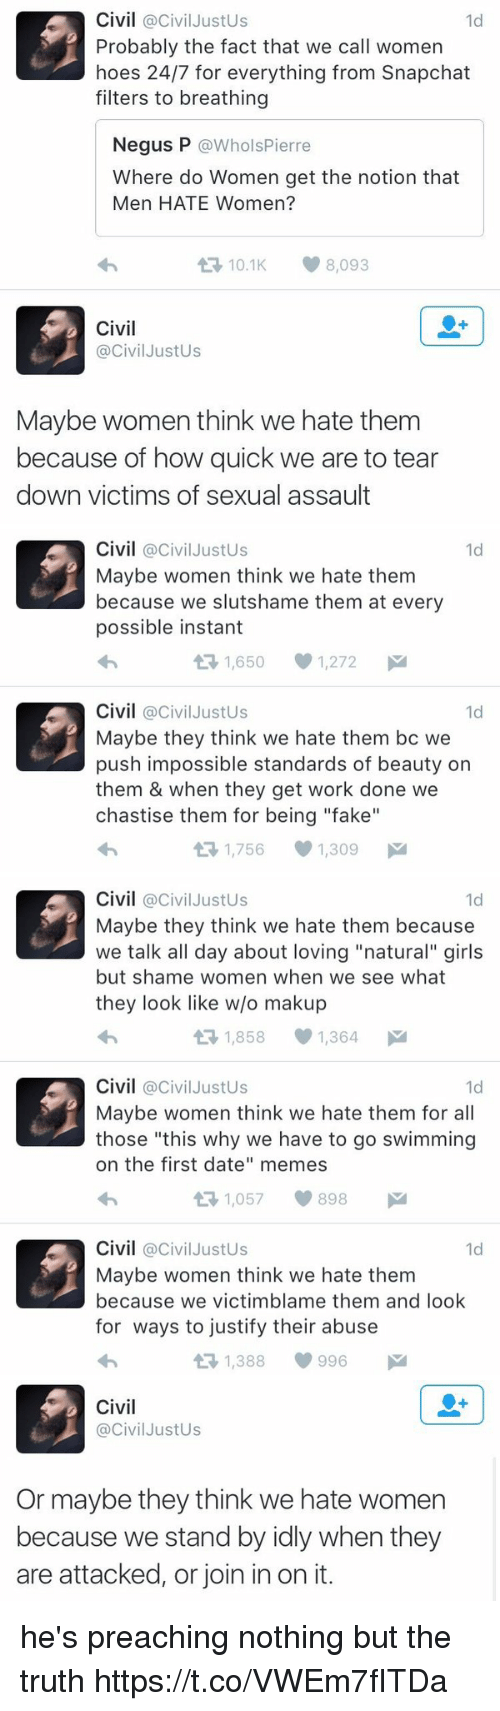 "Fake, Girls, and Hoes: Civil @Civil Justus  1d  Probably the fact that we call women  hoes 24/7 for everything from Snapchat  filters to breathing  Negus P  @Whols Pierre  Where do Women get the notion that  Men HATE Women?  t 10.1 8,093  Civil  @Civil JustUs  Maybe women think we hate them  because of how quick we are to tear  down victims of sexual assault   Civil  @Civil Justus  1d  Maybe women think we hate them  because we slutshame them at every  possible instant  1,650 1,272  M  t Civil  Civil JustUs  1d  Maybe they think we hate them bc we  push impossible standards of beauty on  them & when they get work done we  chastise them for being ""fake""  1,756 1,309  M   Civil  @Civil Justus  1d  Maybe they think we hate them because  we talk all day about loving ""natural"" girls  but shame women when we see what  they look like w/o makup  1,858 1,364  M  t Civil  @Civil Justus  1d  Maybe women think we hate them for all  those ""this why we have to go swimming  on the first date"" memes  1,057 898  M  t Civil  @Civil Justus  1d  Maybe women think we hate them  because we victimblame them and look  for ways to justify their abuse  t 1,388 996   Civil  Civil JustUs  Or maybe they think we hate women  because we stand by idly when they  are attacked, or join in on it. he's preaching nothing but the truth https://t.co/VWEm7fITDa"